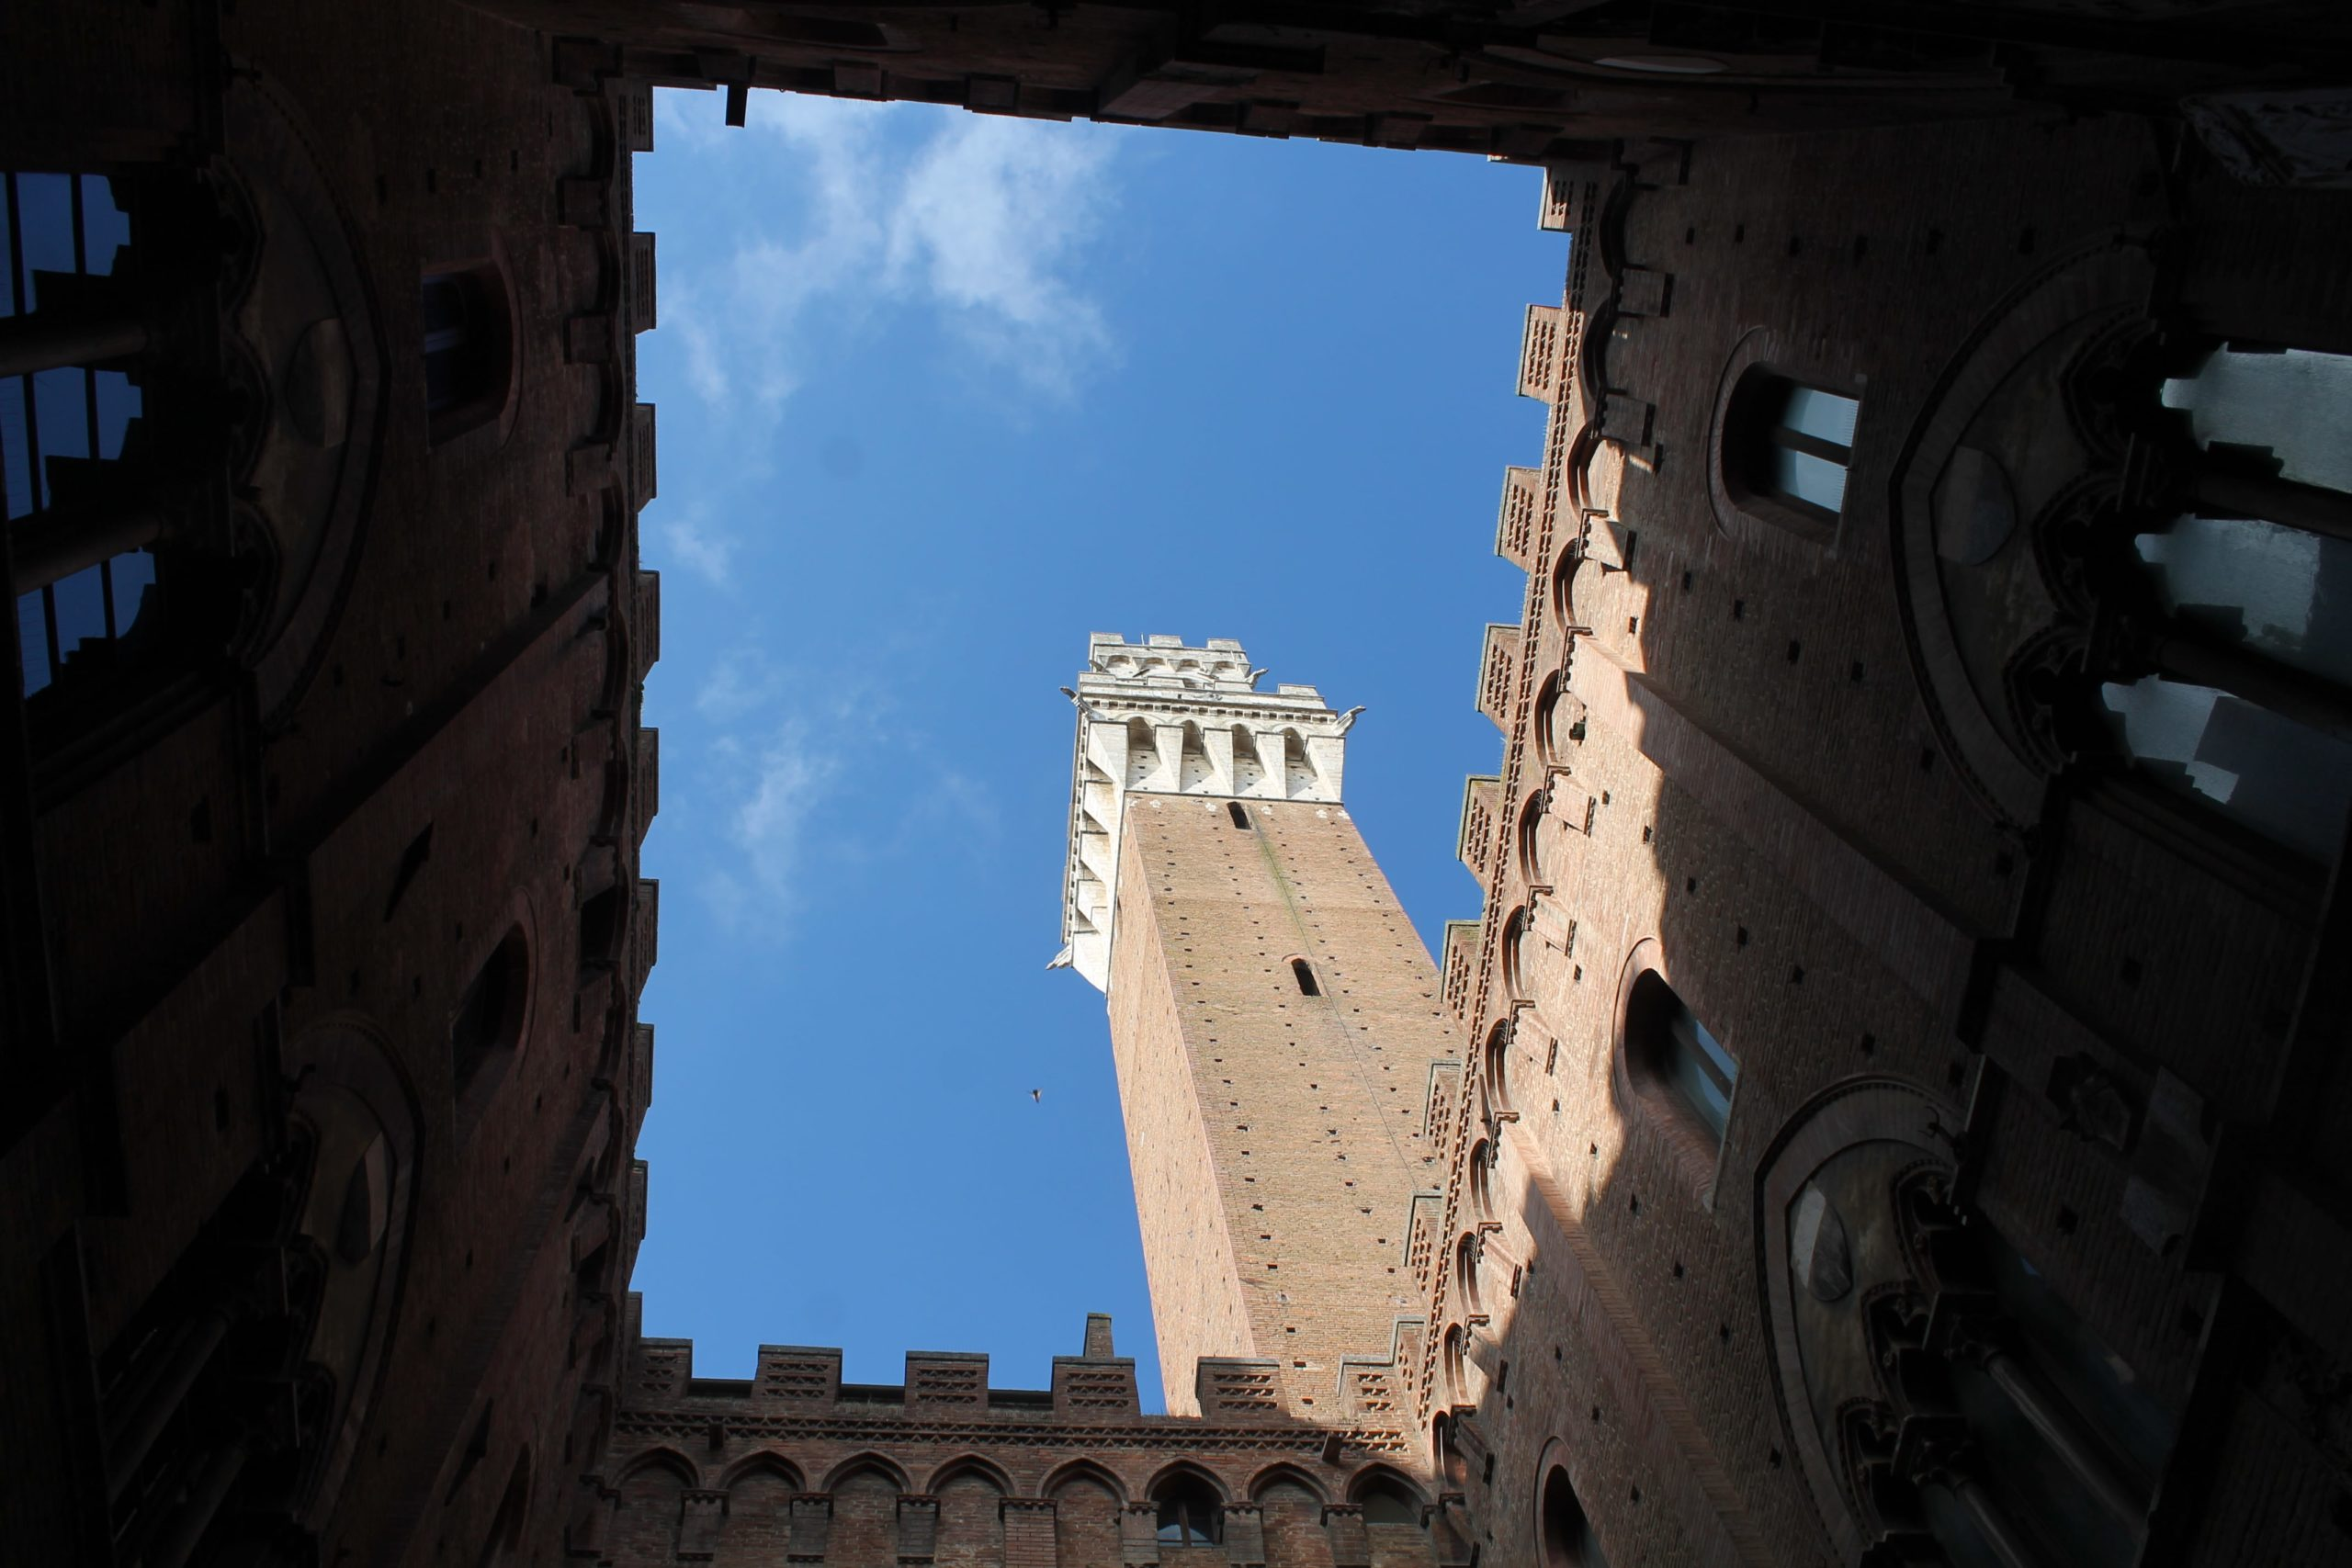 Palazzo Pubblico and Sienese art.